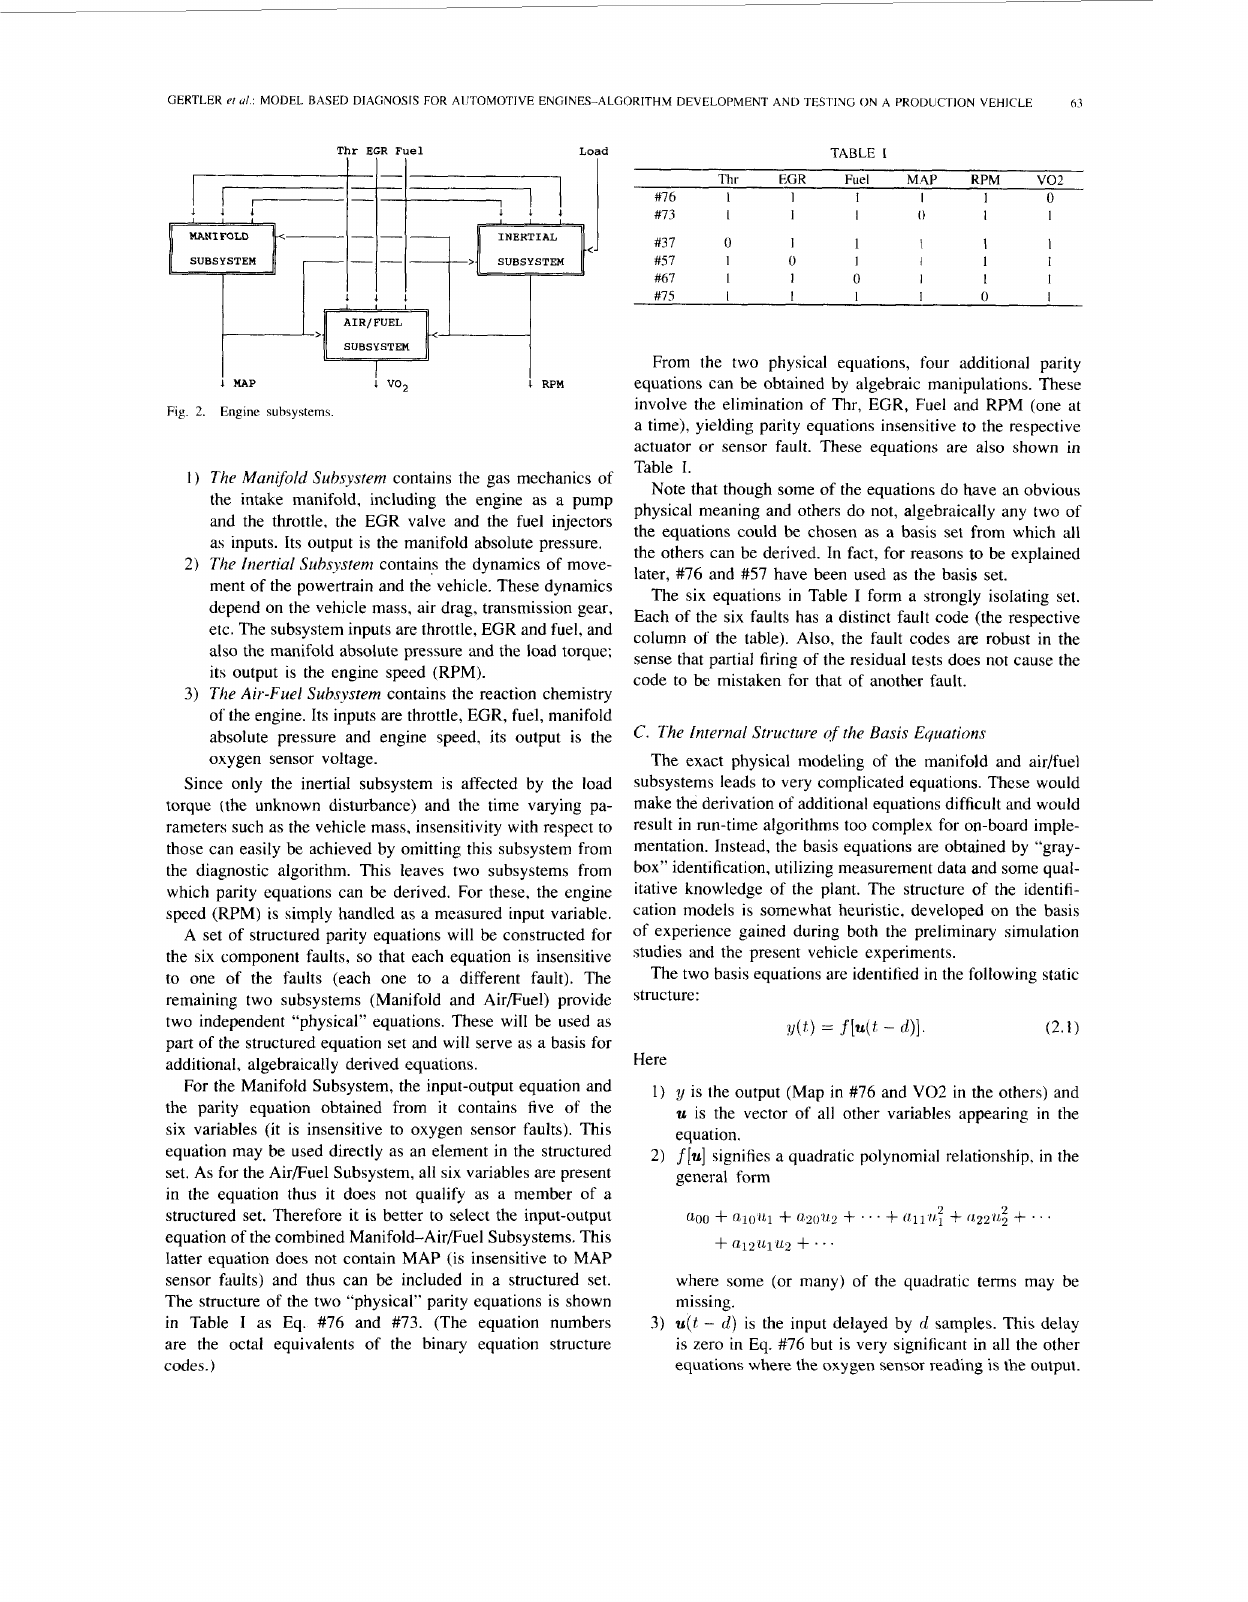 Model Based Diagnosis For Automotive Engines Algorithm Development And Testing On A Production Vehicle